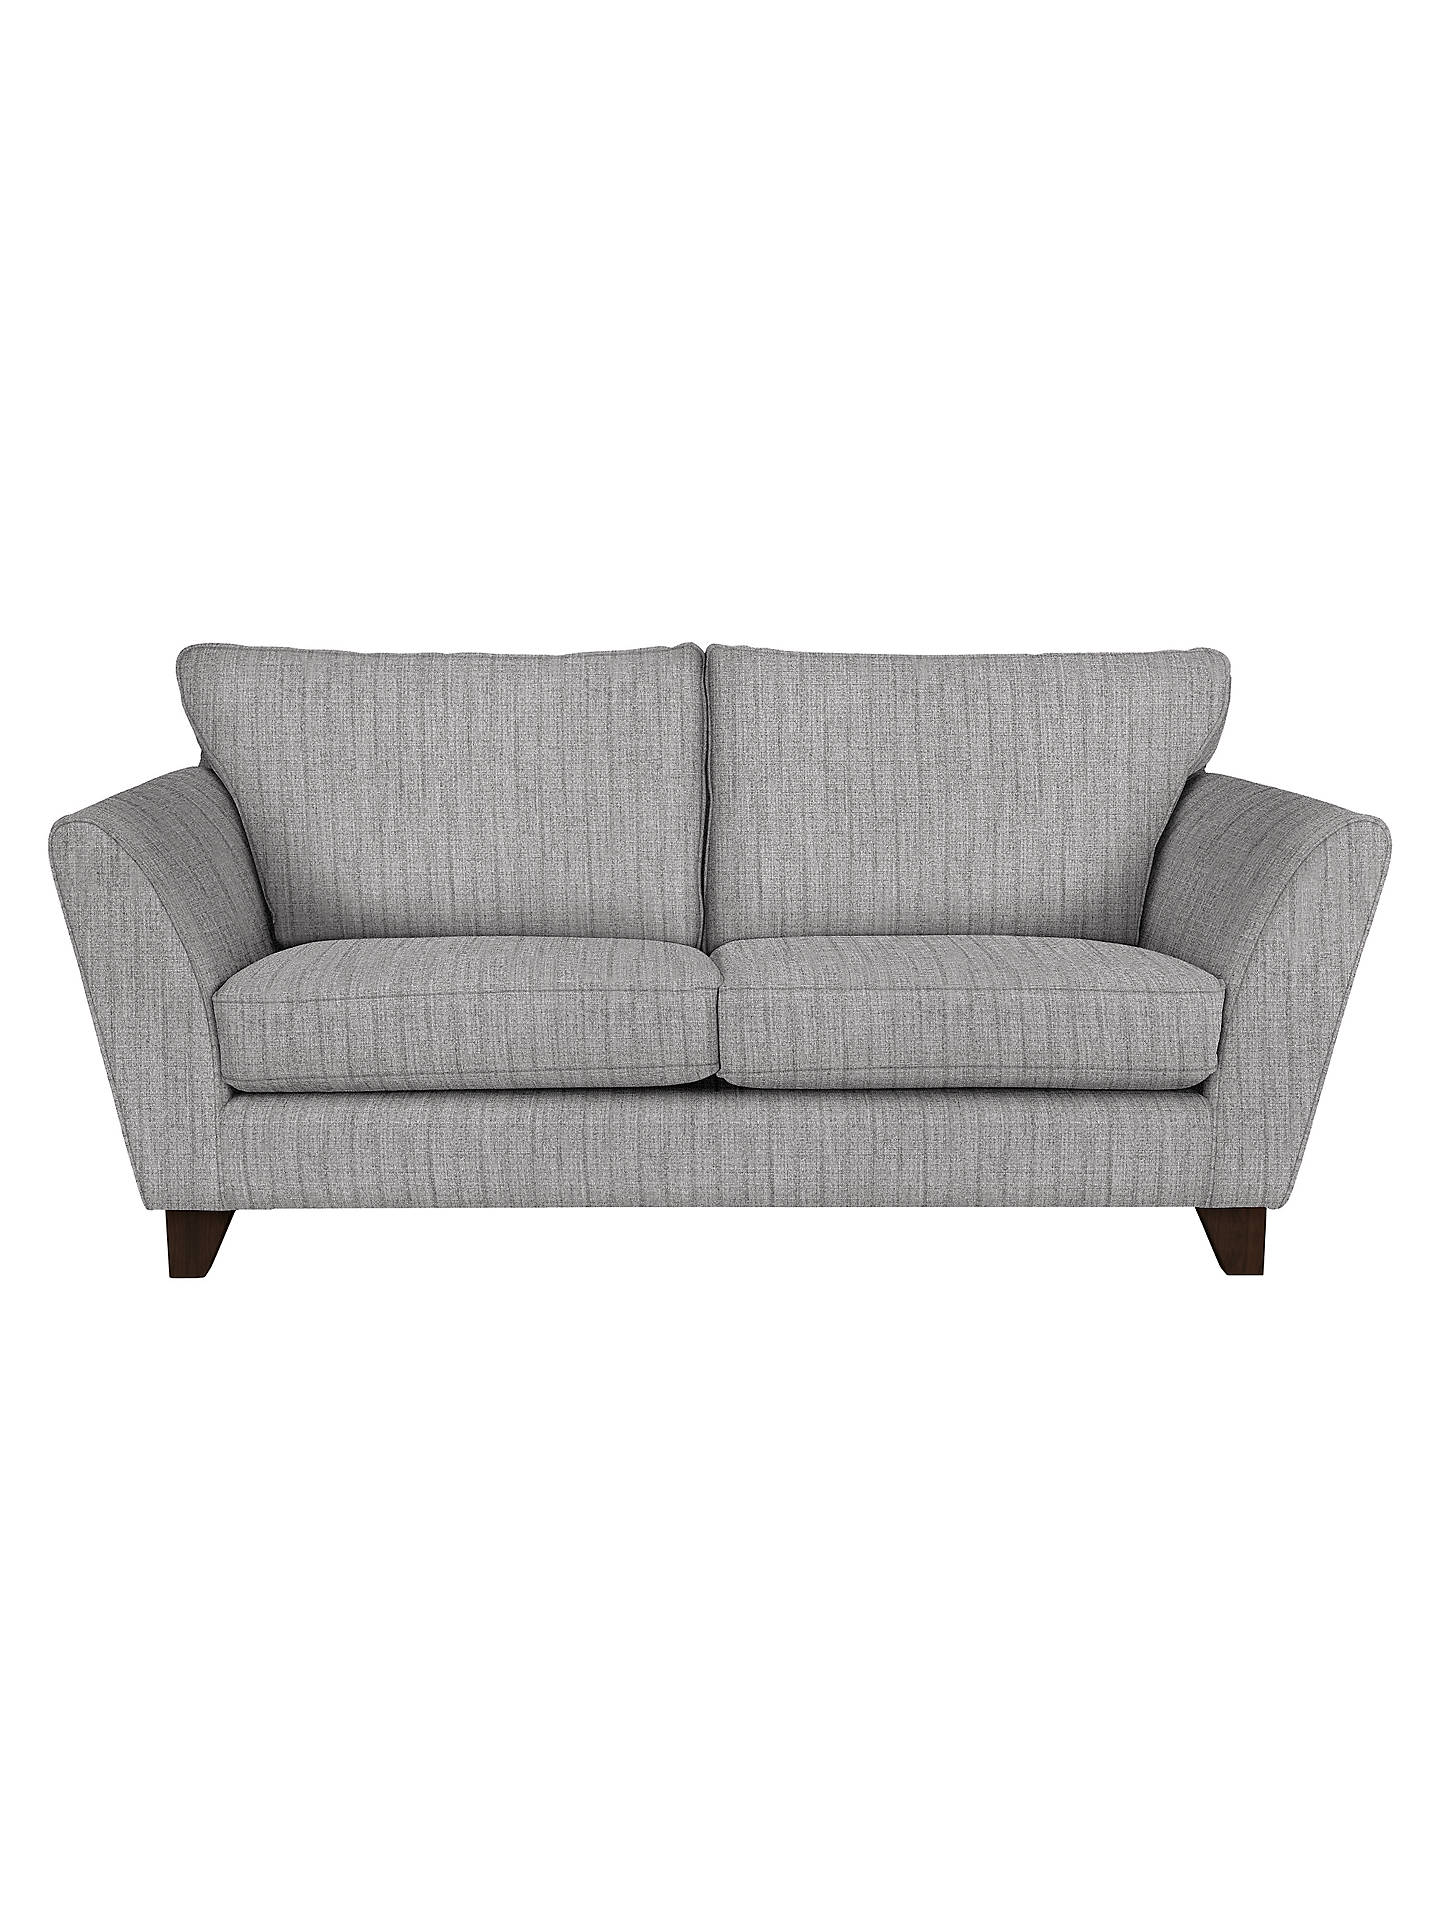 John Lewis Partners Oslo Medium 2 Seater Sofa Dark Leg Porto Blue Grey